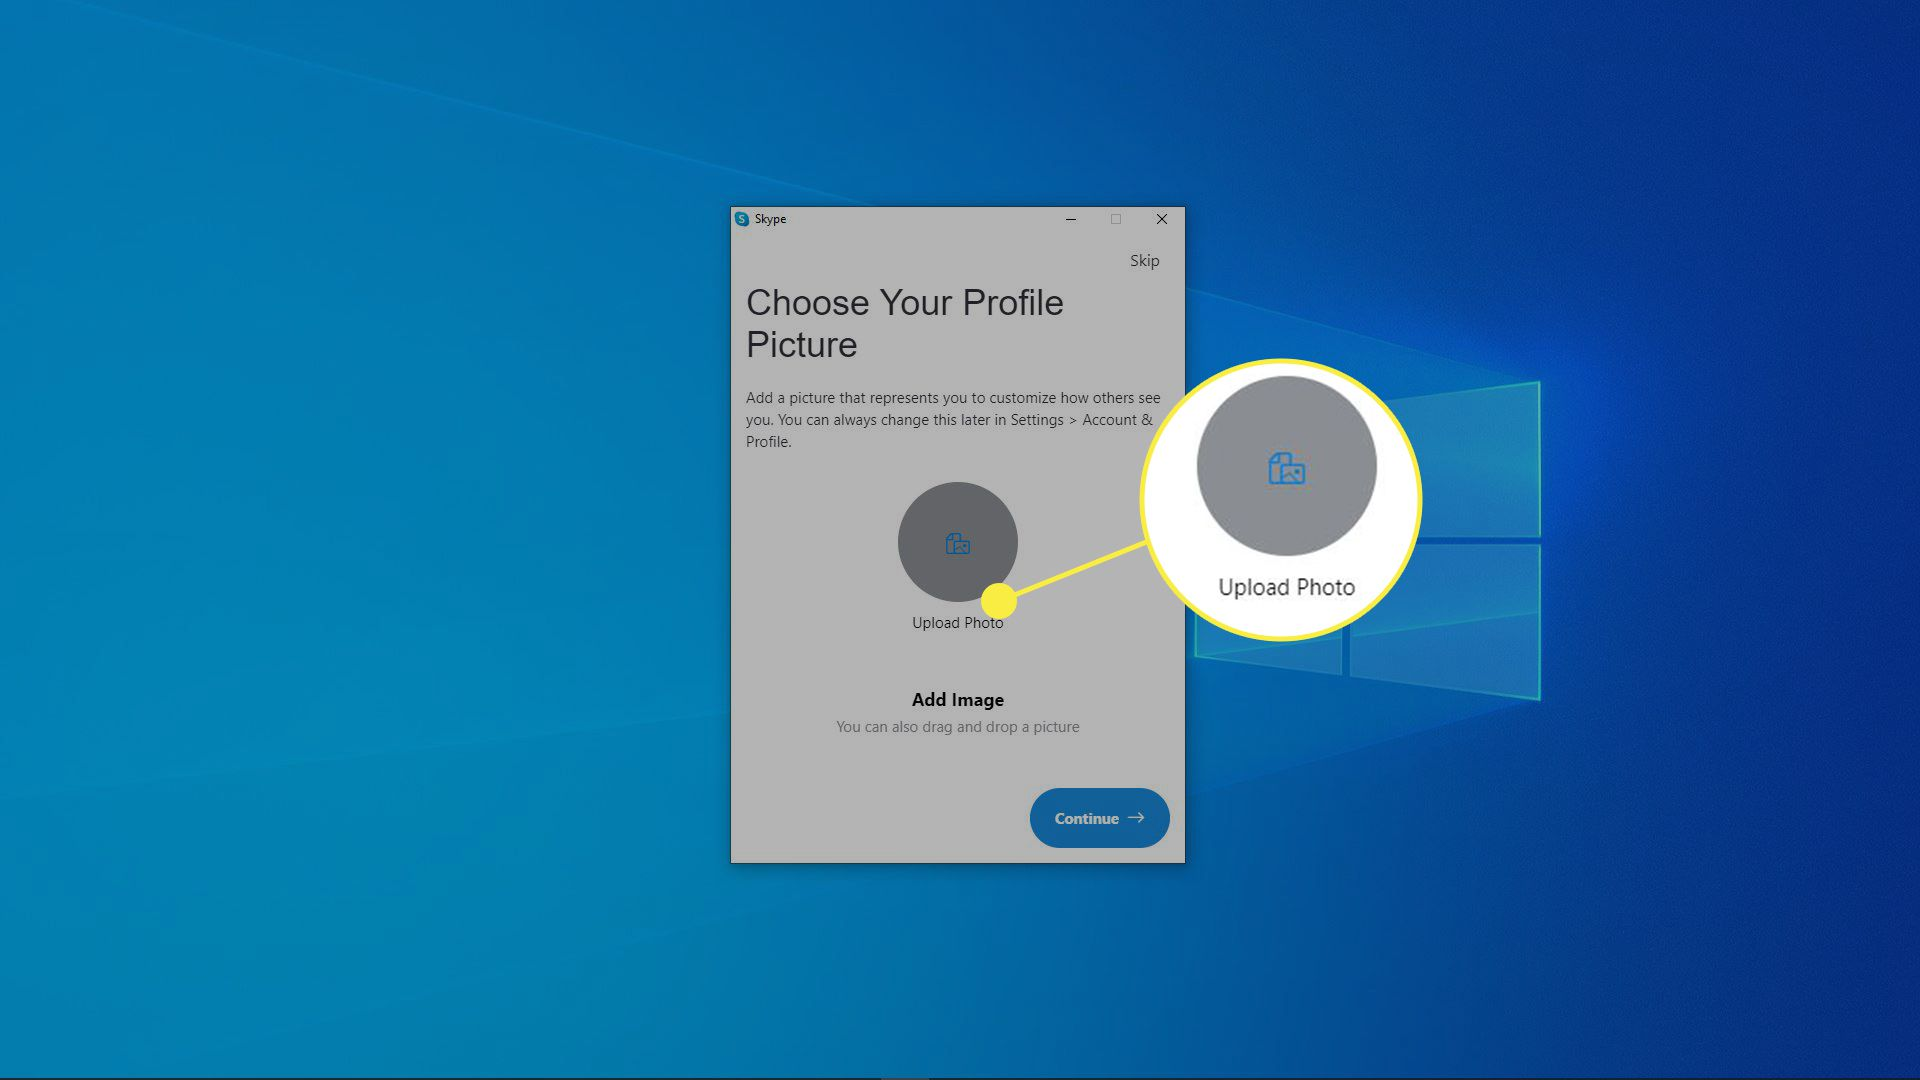 A screenshot of Skype profile picture selection.